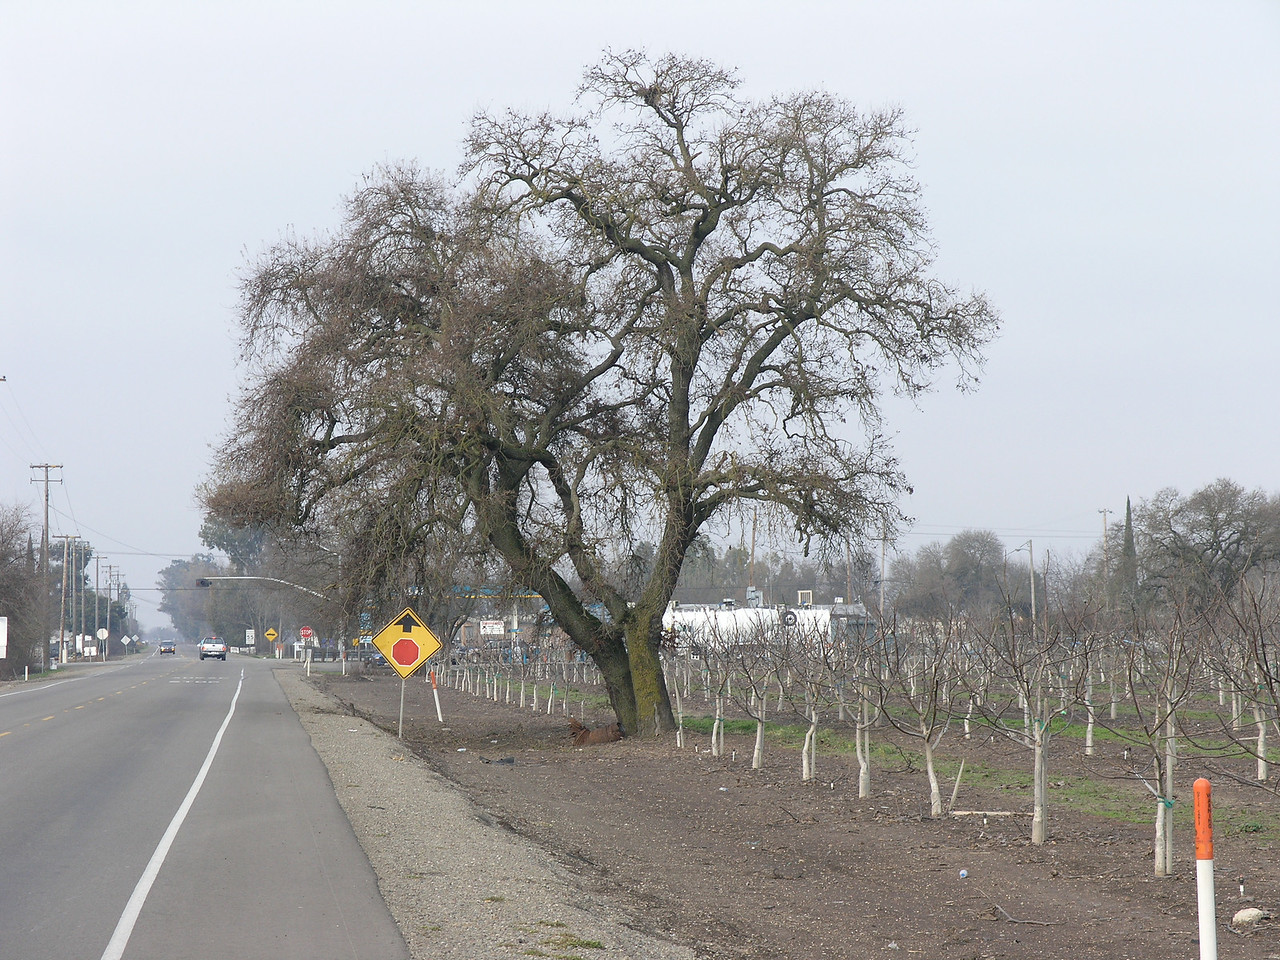 I noticed this valley oak along the side of the road near this young walnut orchard. I appreciate the willingness of the farmer to allow the oak to continue even though you can see that it is impacting the close walnuts.